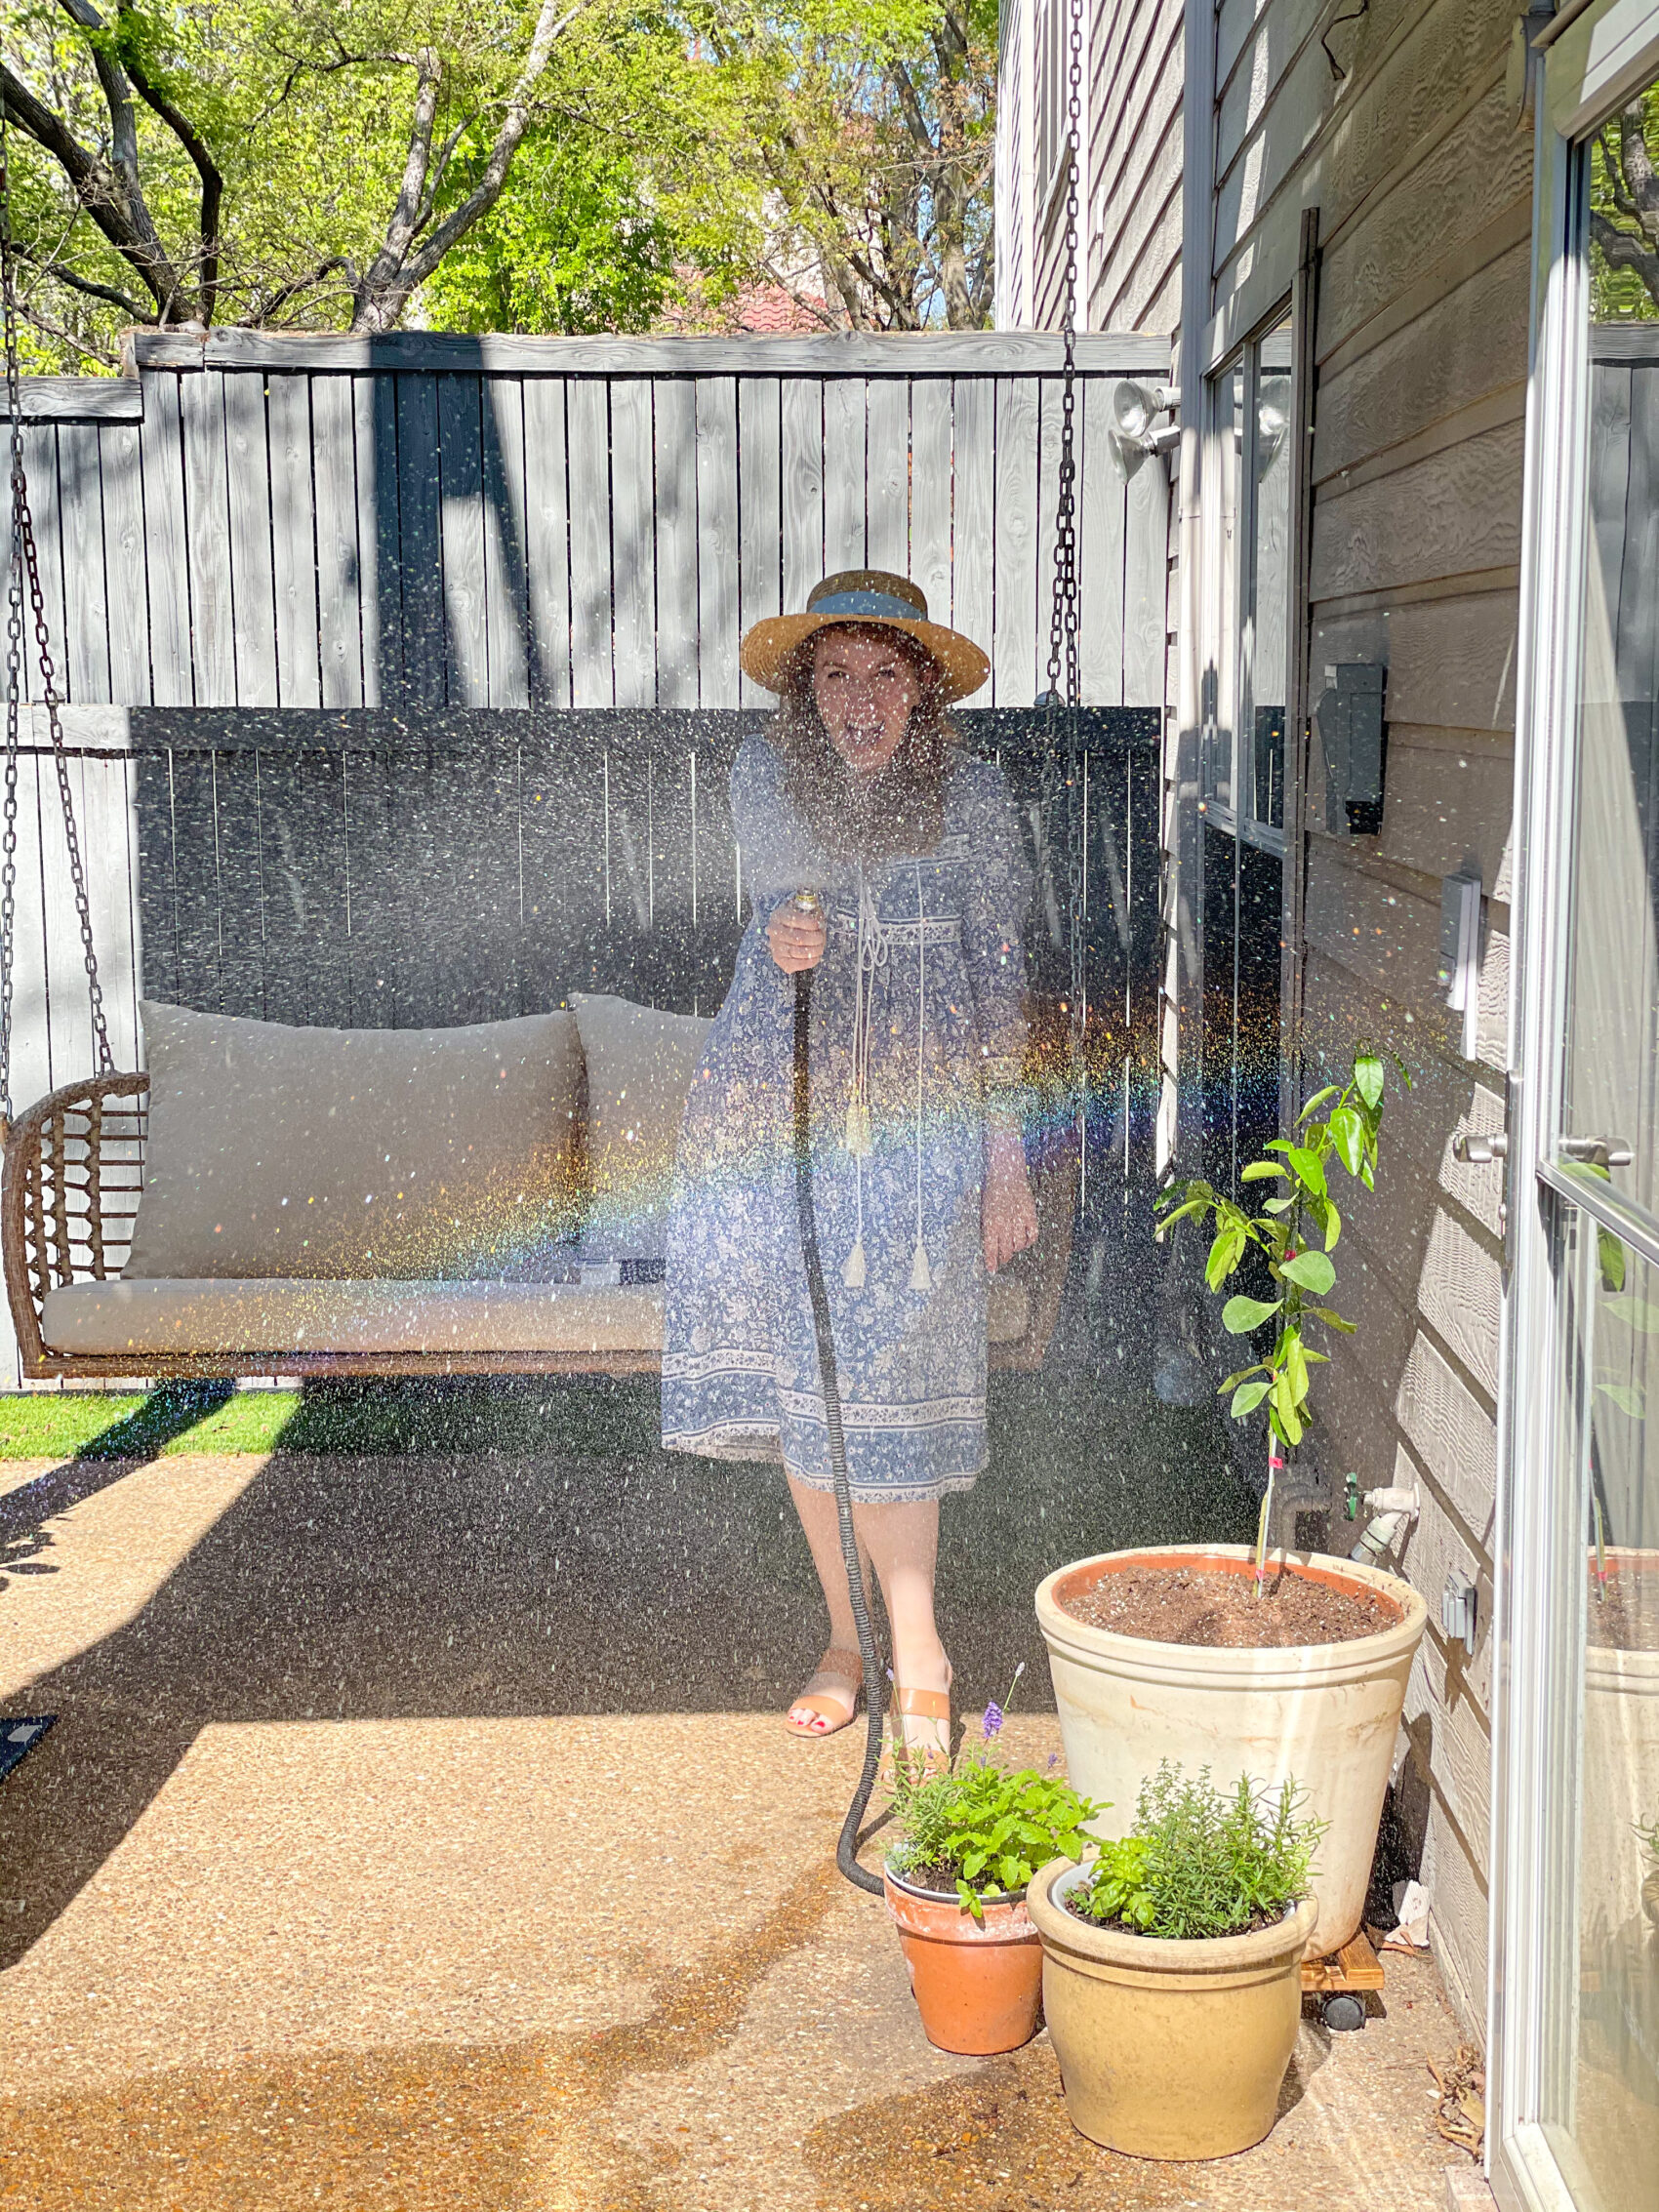 Blogger Amanda Kushner watering her herb garden as part of her outdoor living space reveal photos.